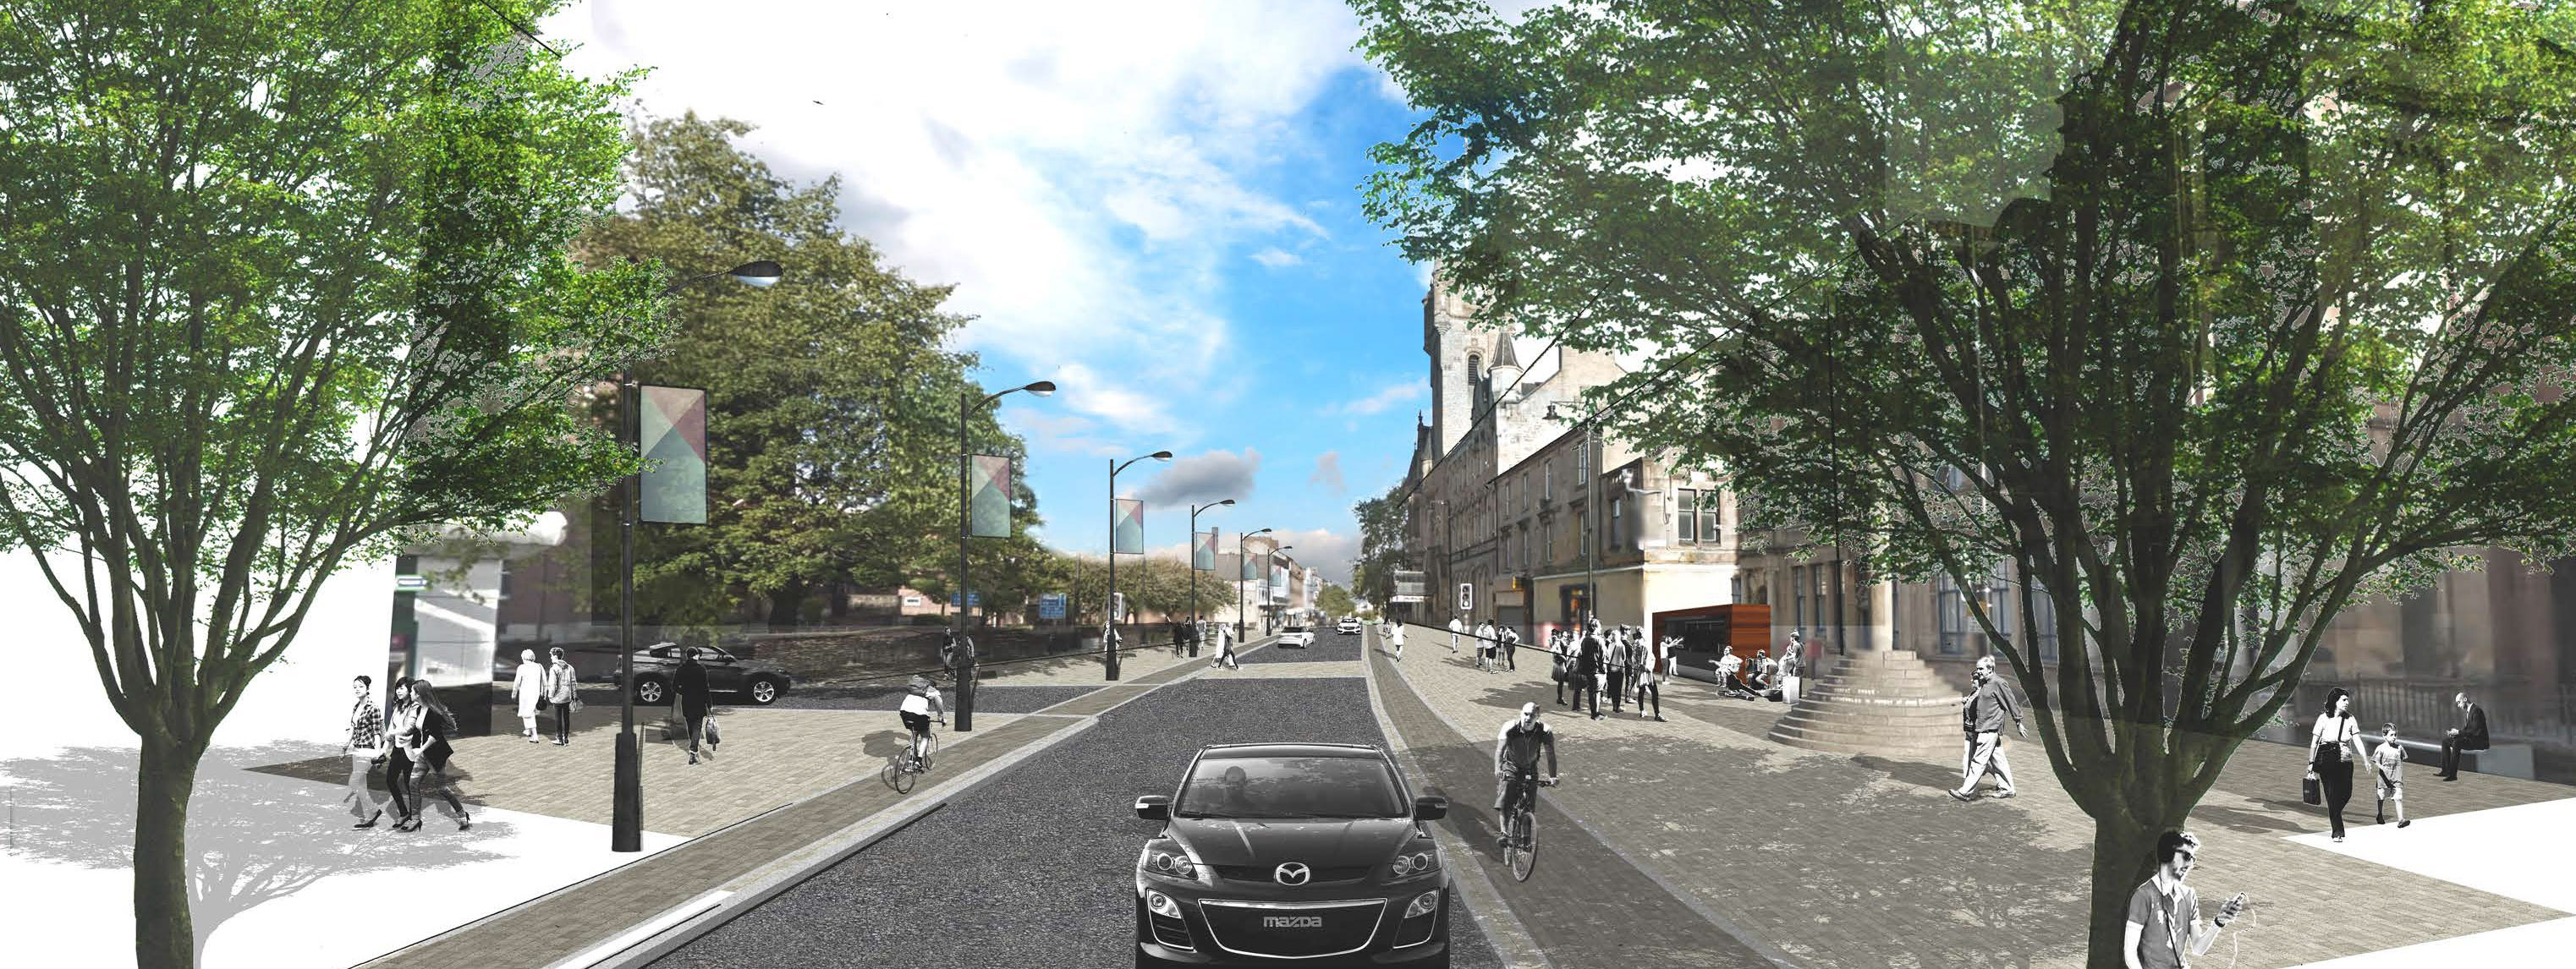 Cambuslang and Rutherglen - Street Redesign